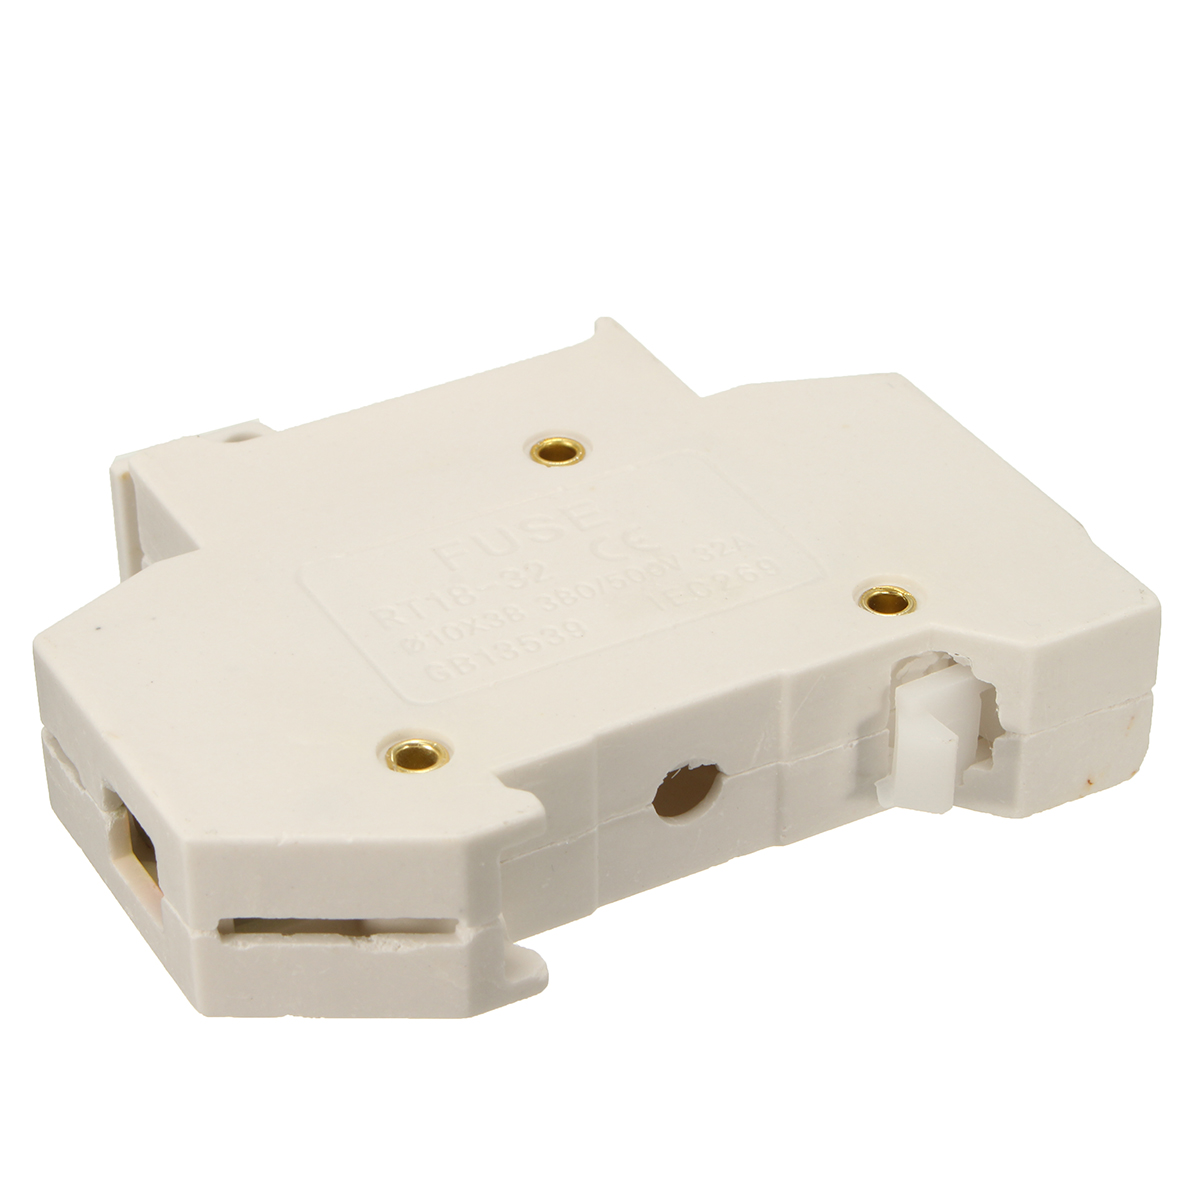 RT18-32X AC 380V 32A 1 Pole 10x38mm DIN Rail Mount Fuses Holder Base with LED Indicator